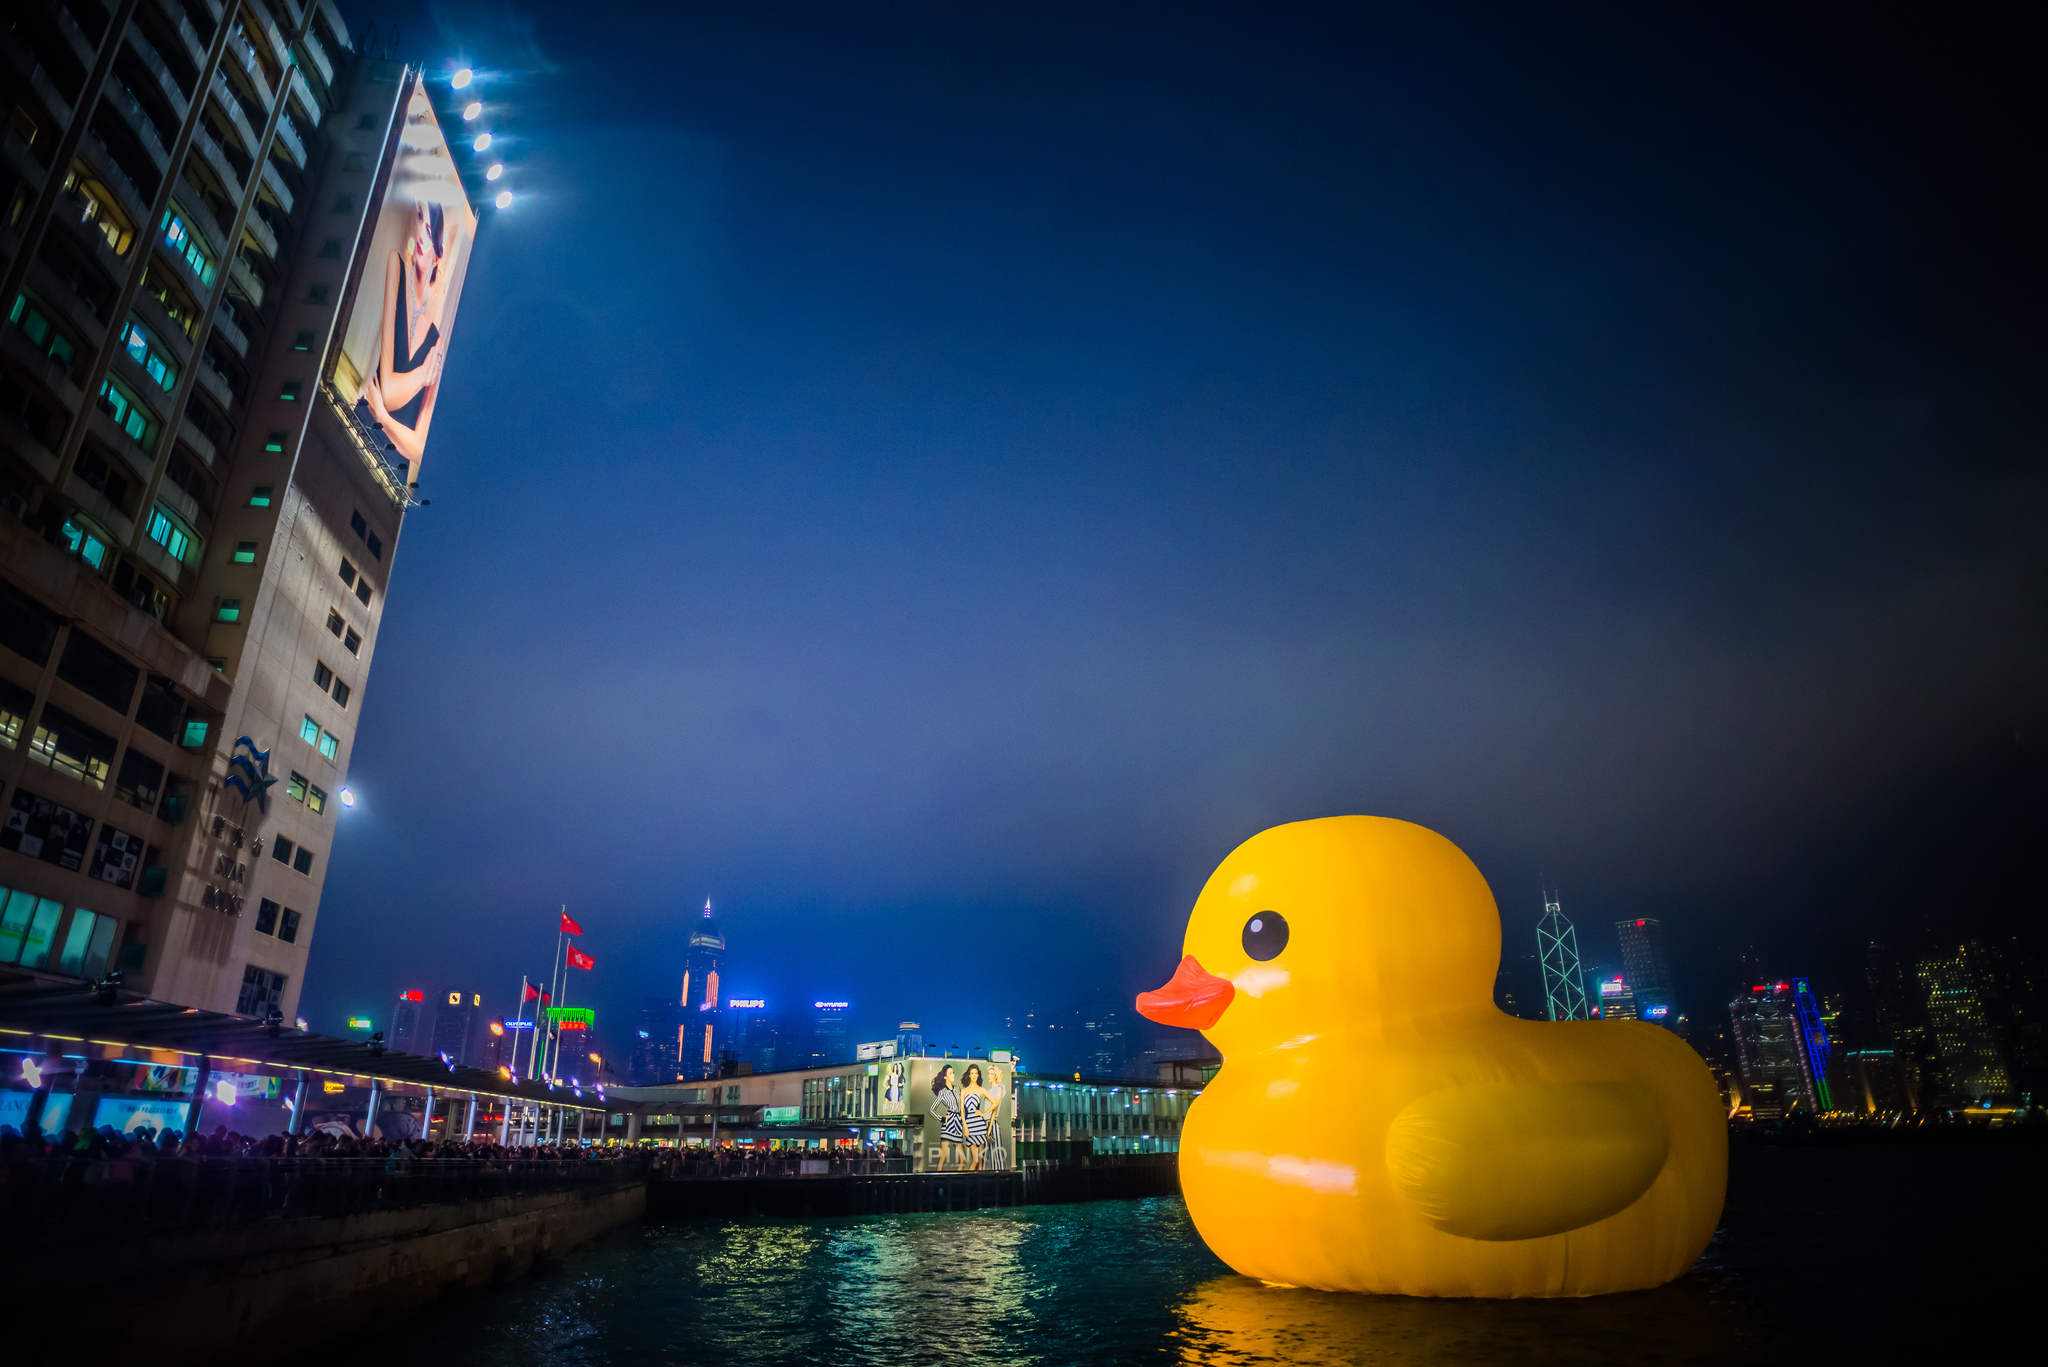 An enormous rubber duck in Hong Kong. By Chris Zielecki.